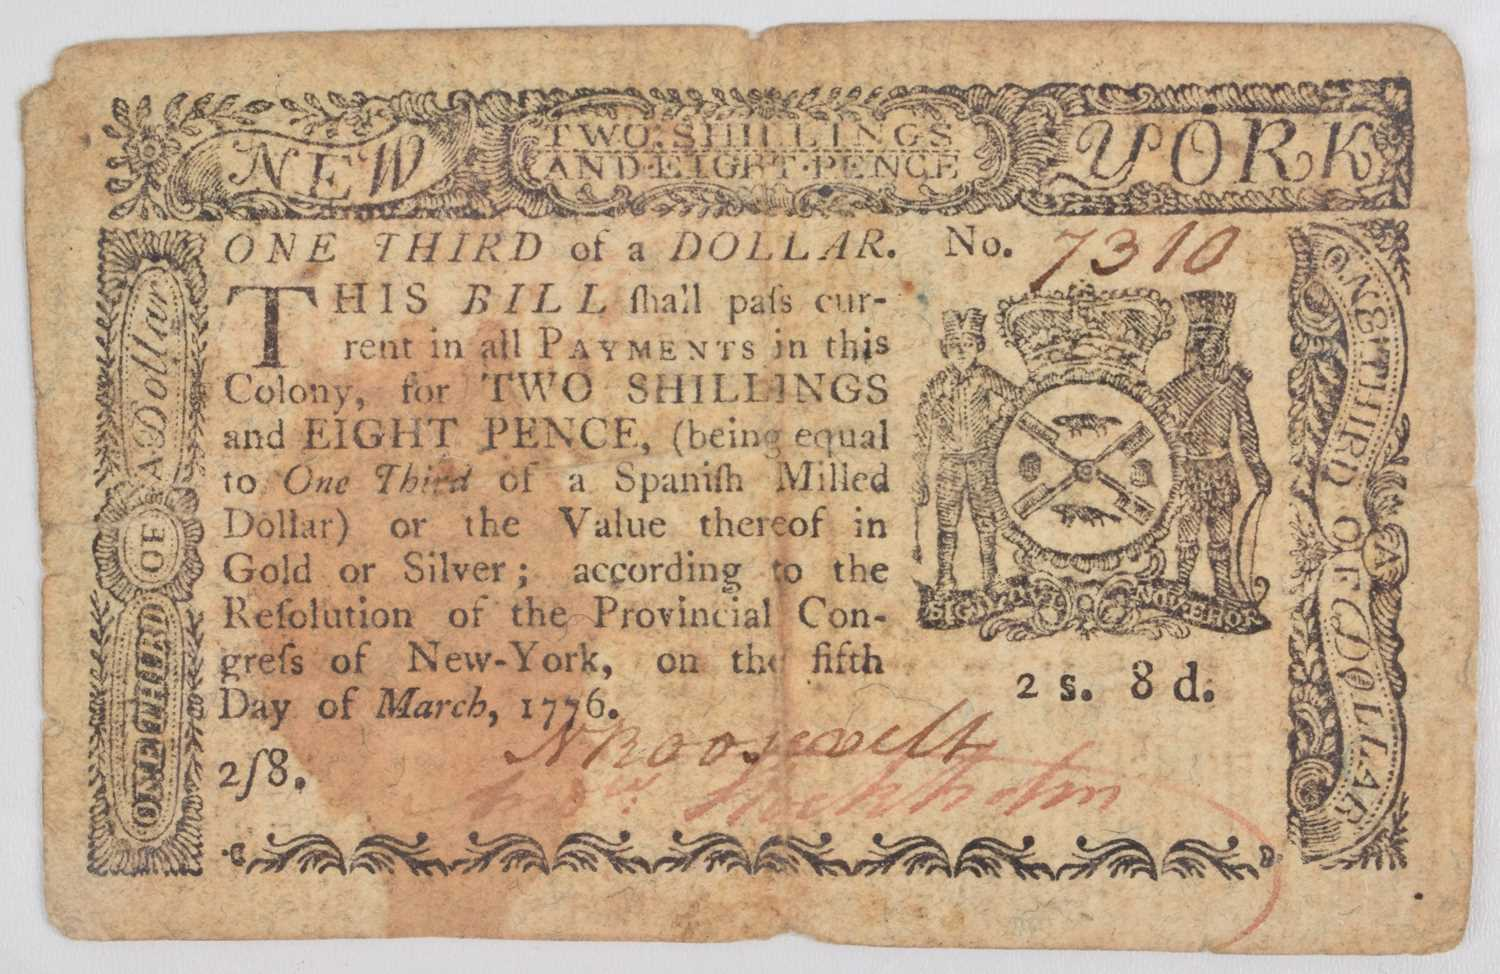 Lot 83 - New York Colonial Currency, One Third Dollar, 1776.